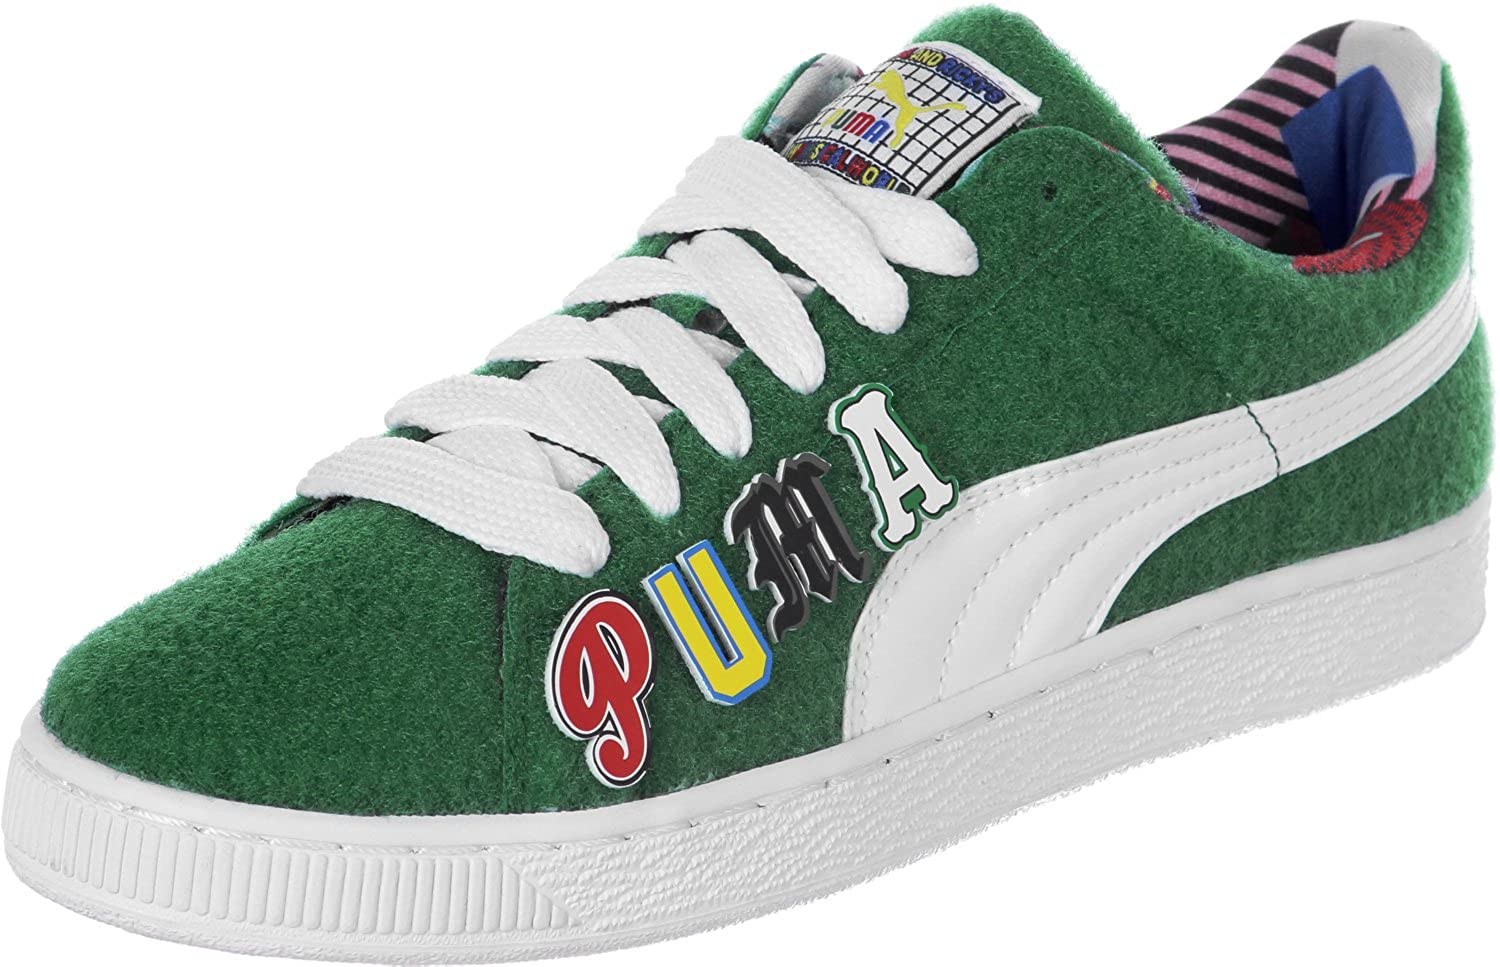 Puma Basket X Dee & Ricky CR Messieurs Vert Limited Edition Chaussures Homme Sneaker Baskets